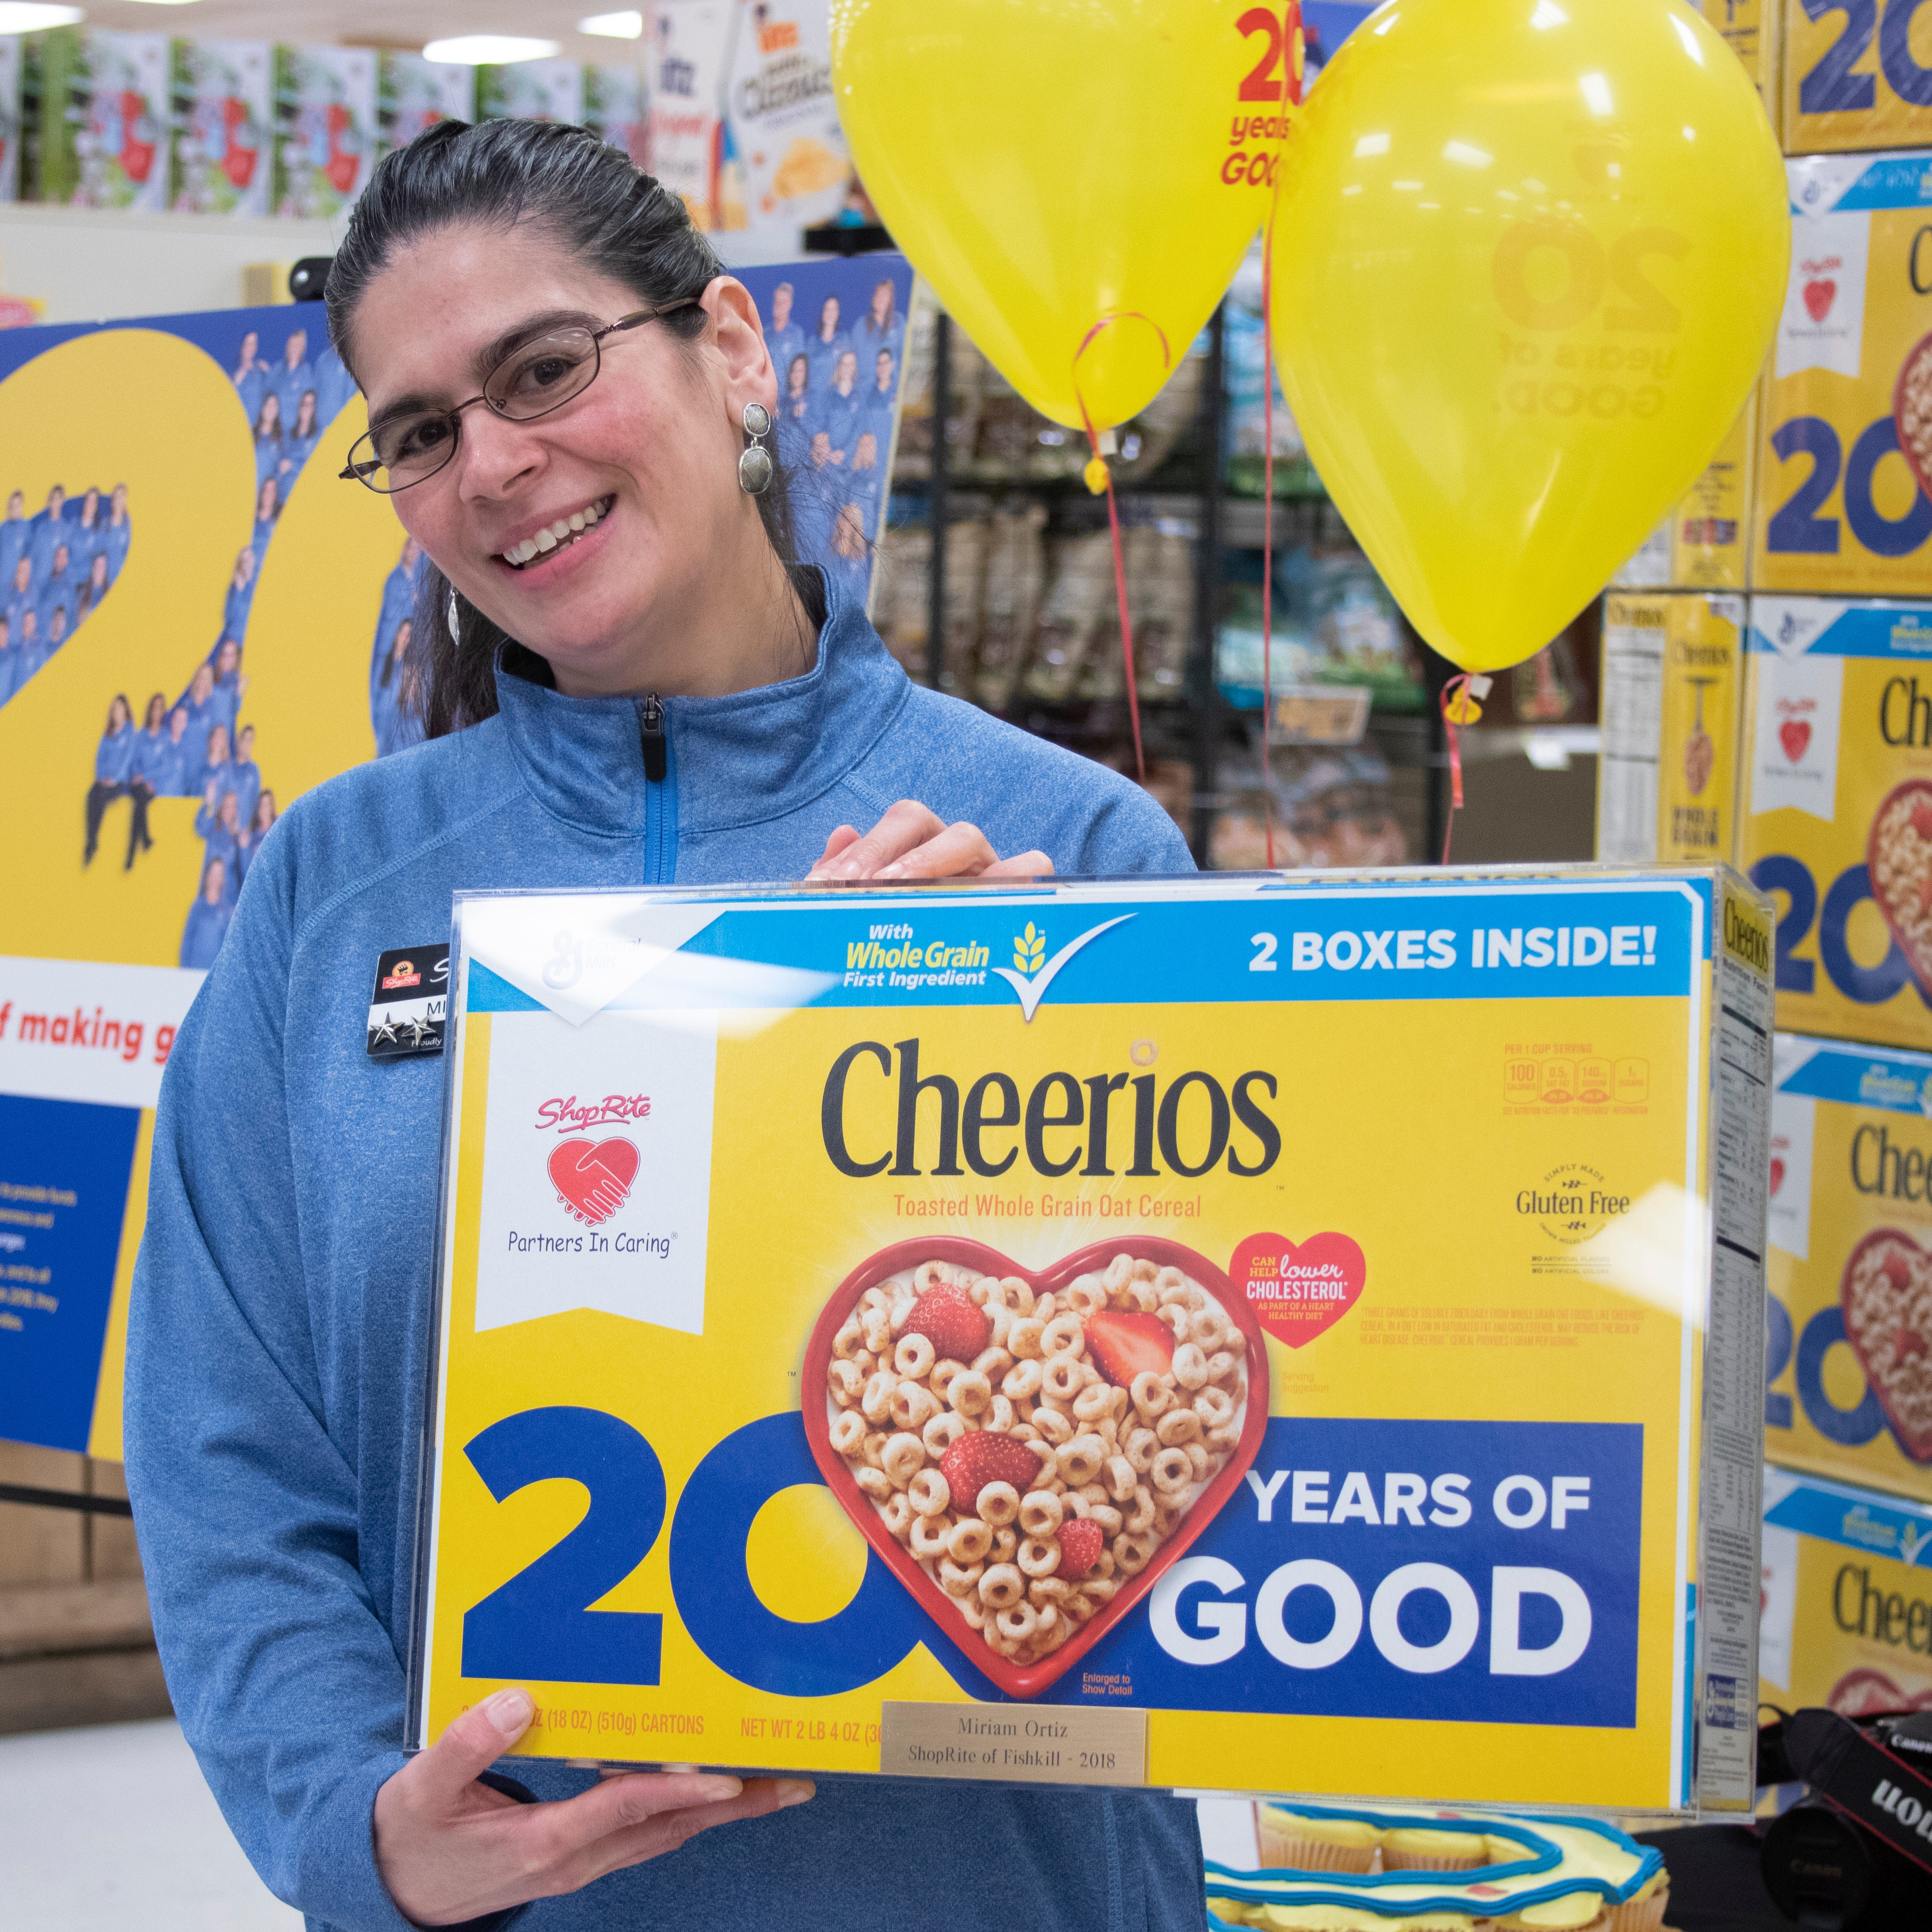 Hometown 'heroes' make imprint on Cheerios boxes for ShopRite fundraising efforts